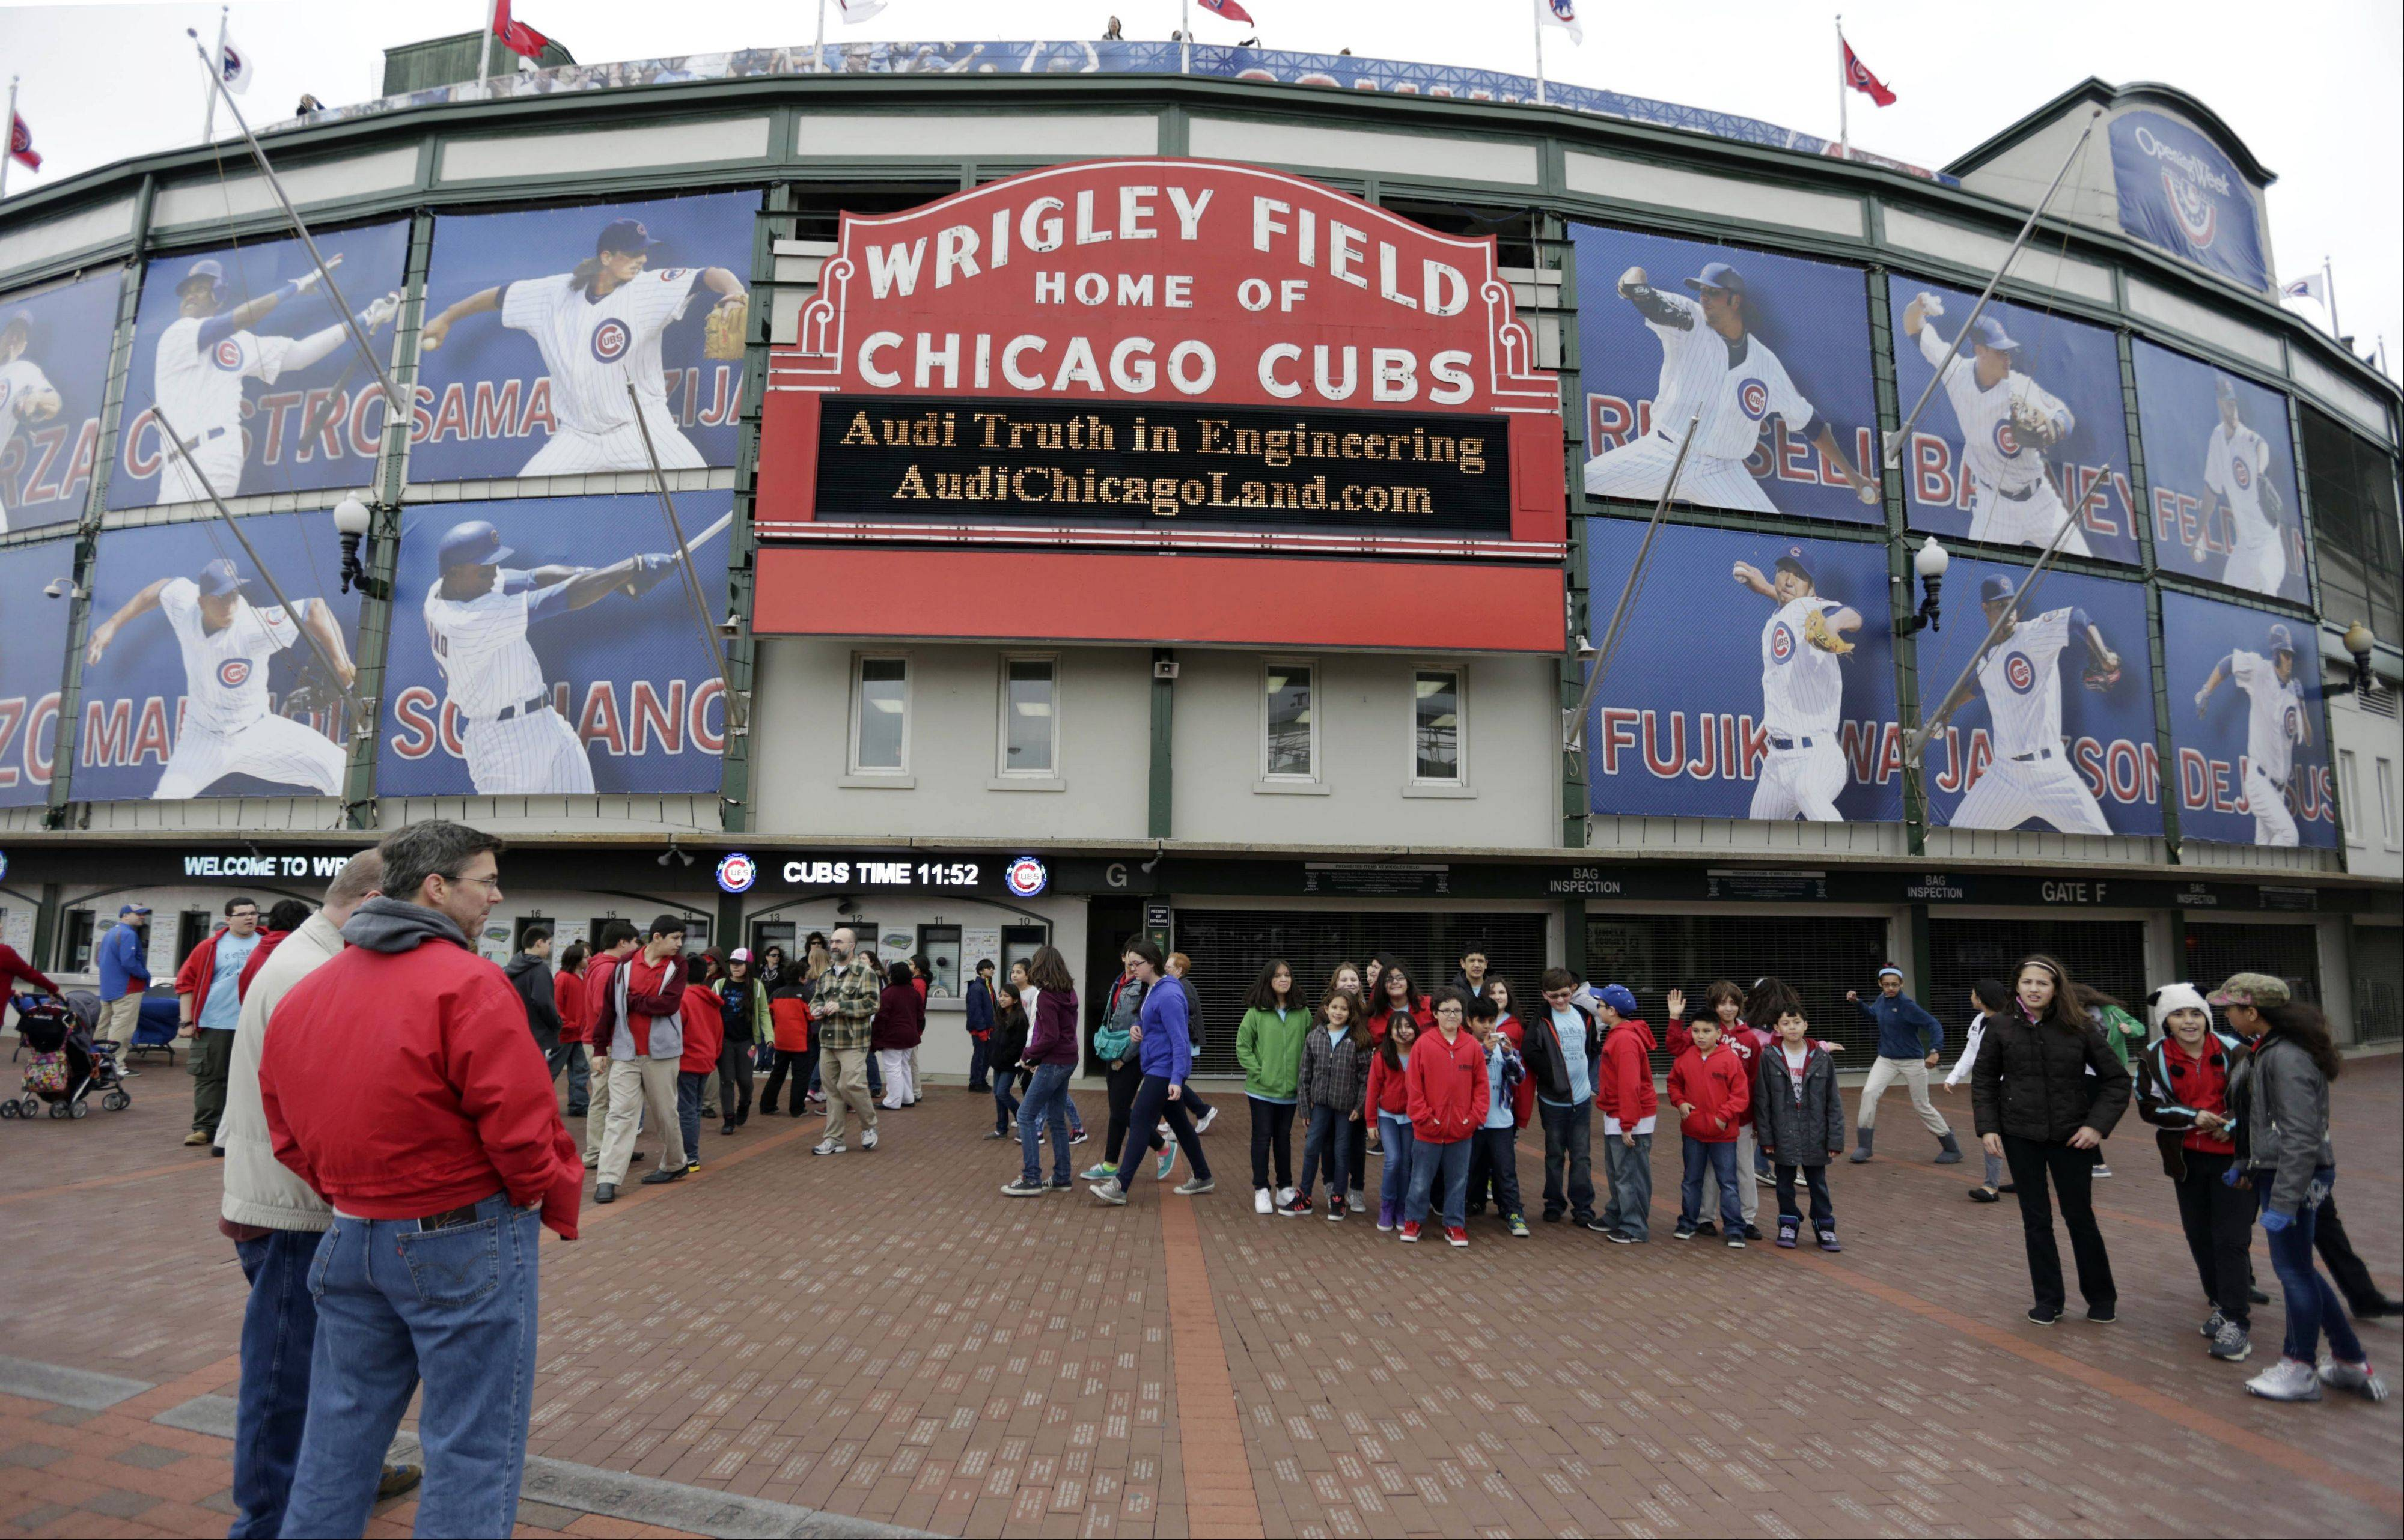 This photo taken Monday, April 15, 2013, in Chicago shows the exterior of Wrigley Field, home of the Chicago Cubs baseball club. During a news conference today, Chicago Cubs chairman Tom Rickets said the Cubs and the city have agreed on details of a $500 million facelift for Wrigley Field, including an electronic video screen that is nearly three times as large as the one currently atop the center-field bleachers of the 99-year-old ballpark.